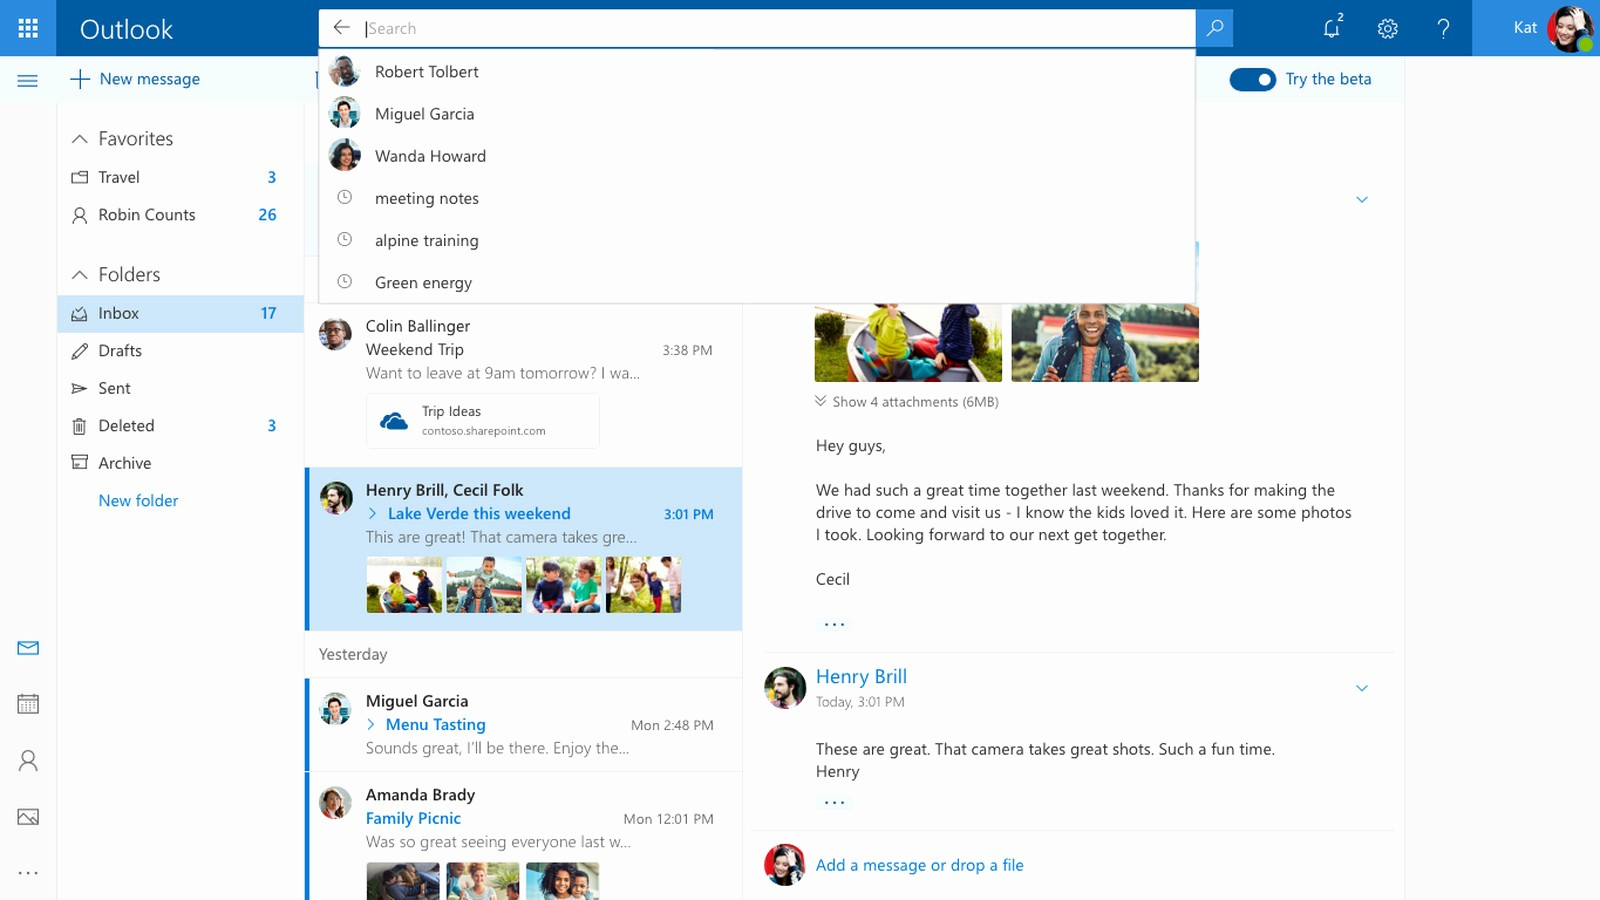 Outlook Com Mail Sign In Unique Microsoft's New Outlook Design Includes Better Search